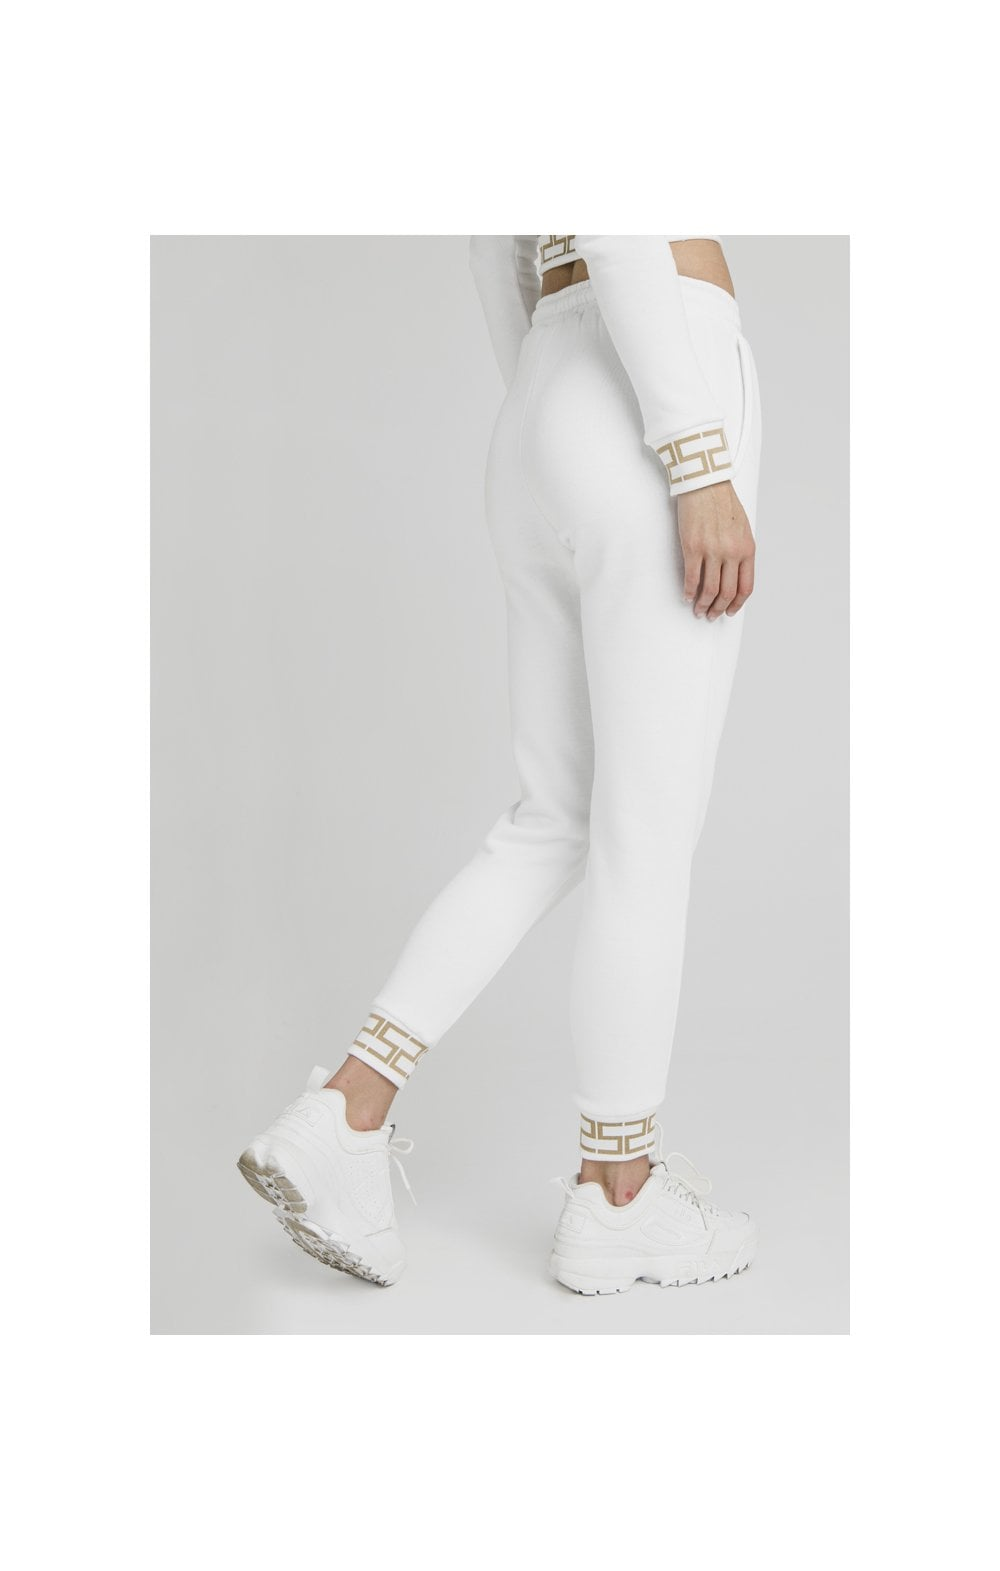 Load image into Gallery viewer, SikSilk Luxury Joggers - White (5)